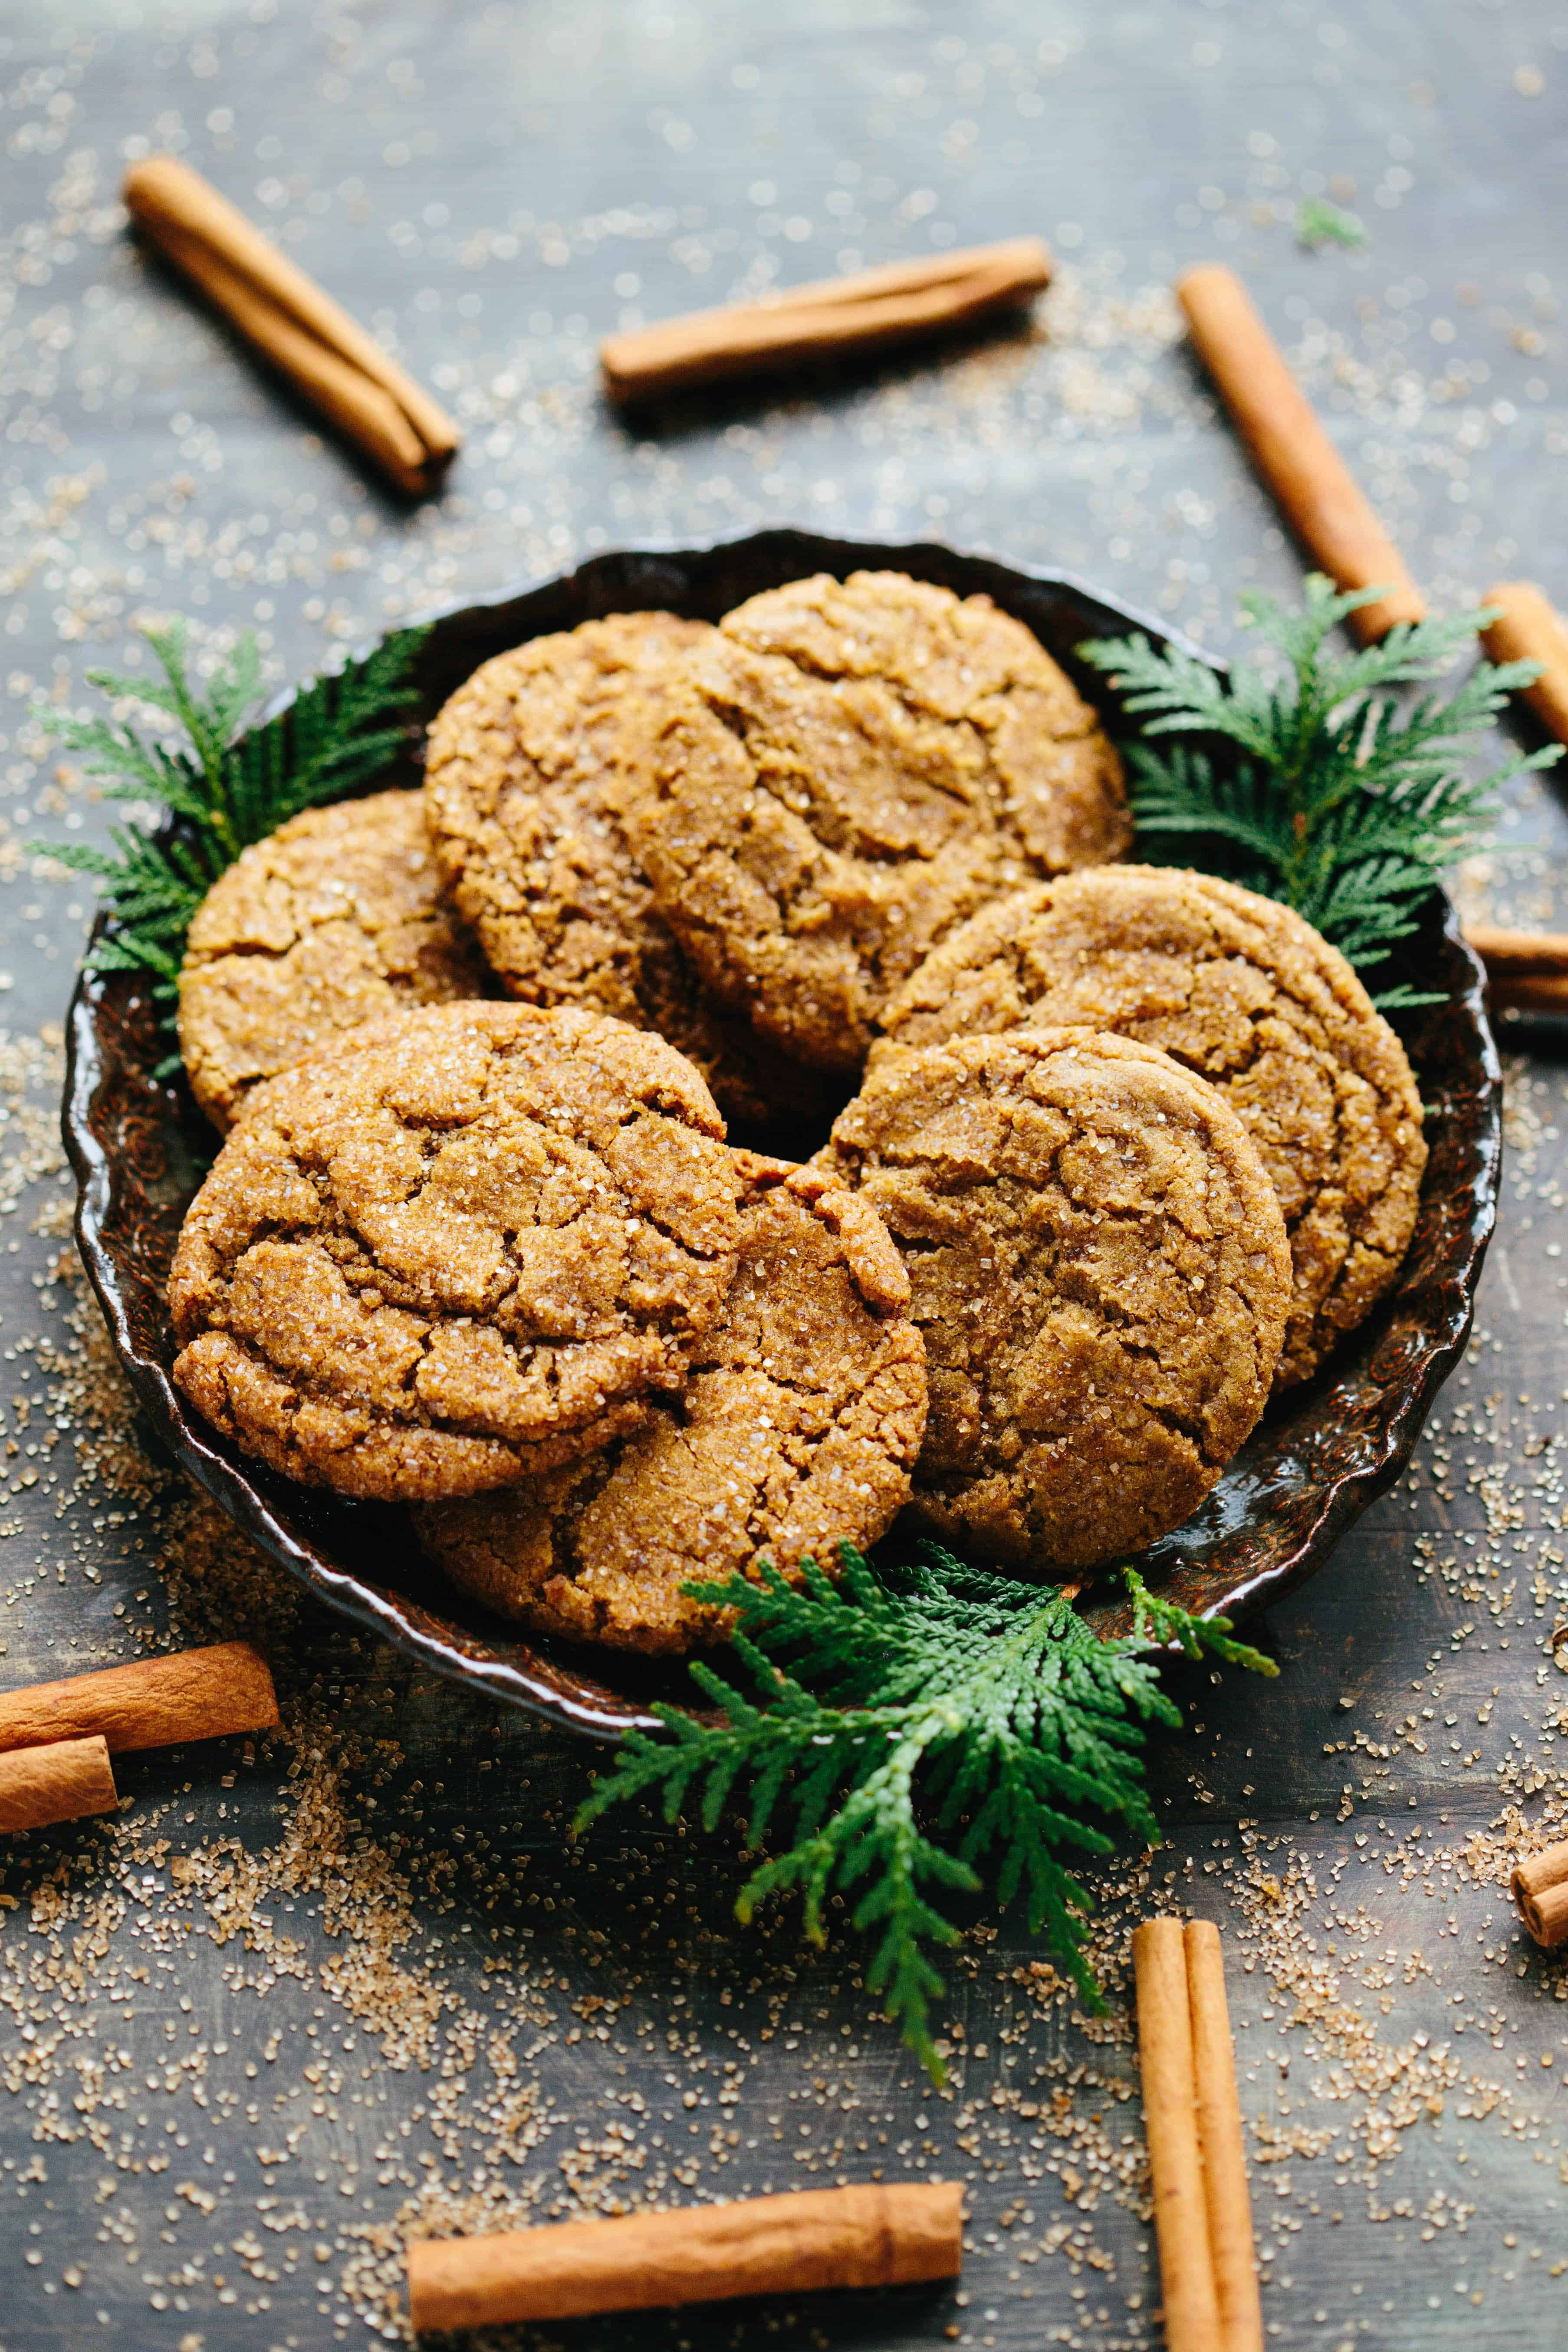 plate of Brown Butter Ginger Molasses Cookies decorated with cinnamon sticks and evergreen leaves